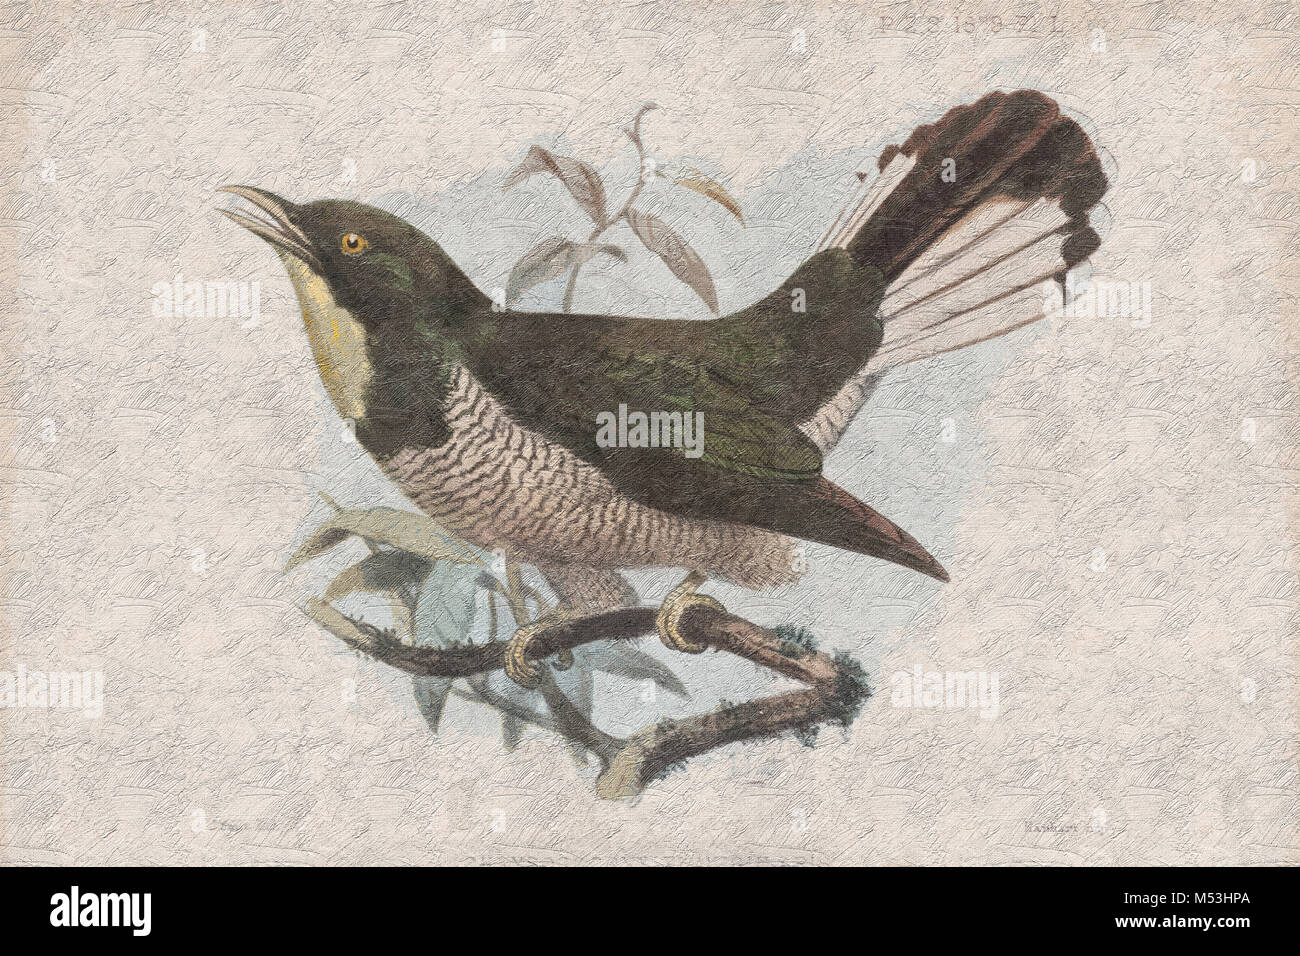 Digitally enhanced image yellow-throated cuckoo (Chrysococcyx flavigularis). A species of cuckoo in the Cuculidae - Stock Image